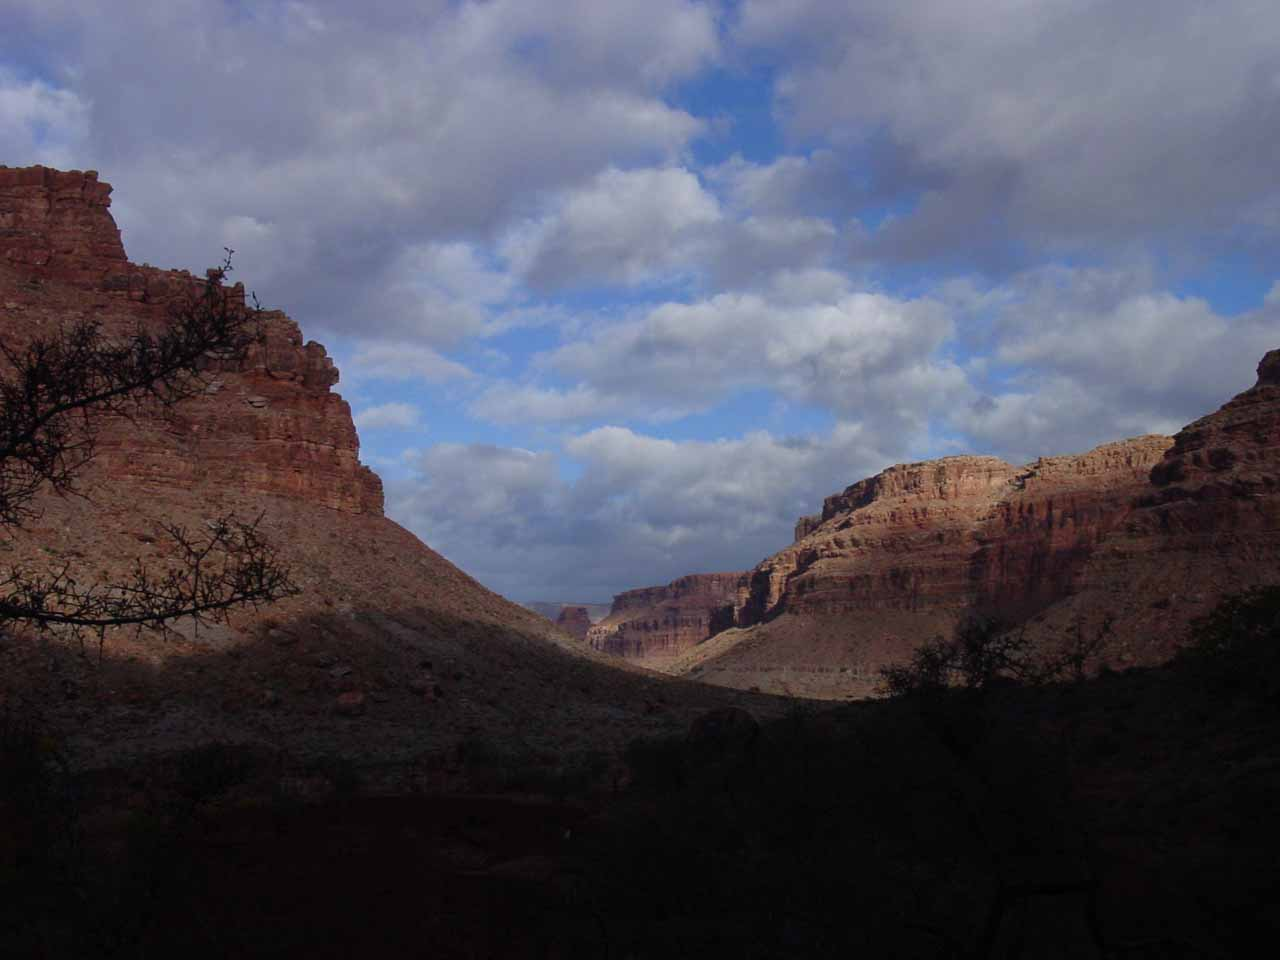 Further on the trail in the two miles between Supai and Havasu Falls